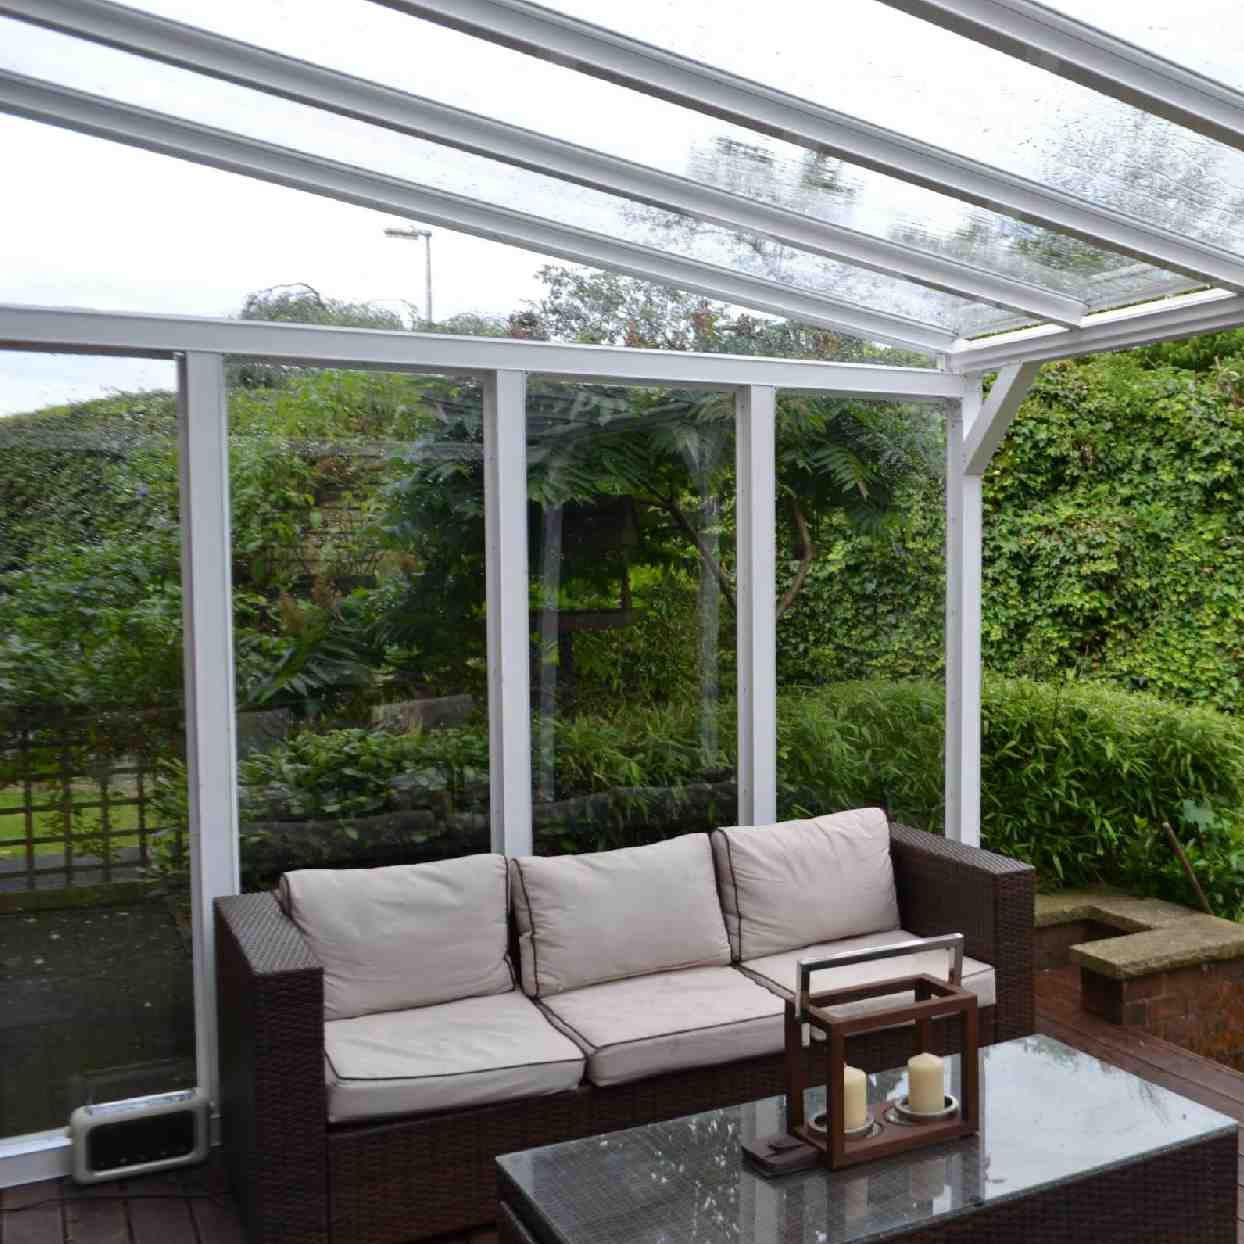 Buy Omega Verandah with 16mm Polycarbonate Glazing - 12.0m (W) x 4.5m (P), (5) Supporting Posts online today